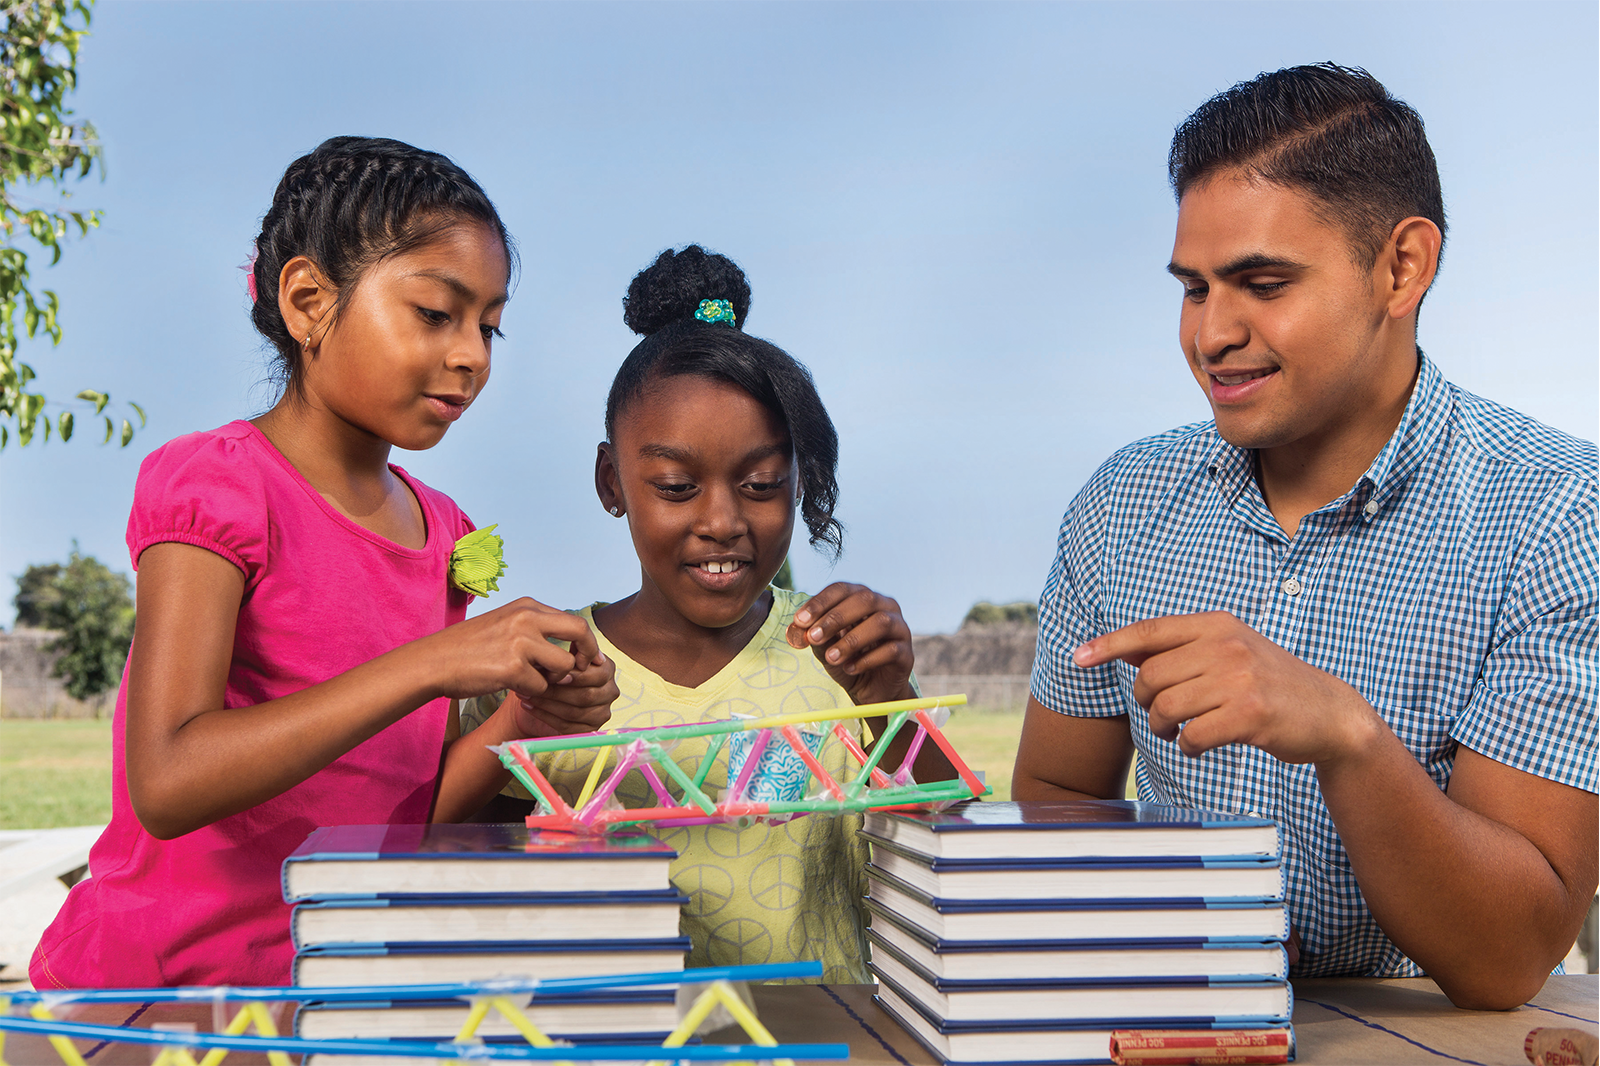 an adult assisting 2 young ladies to build a straw bridge